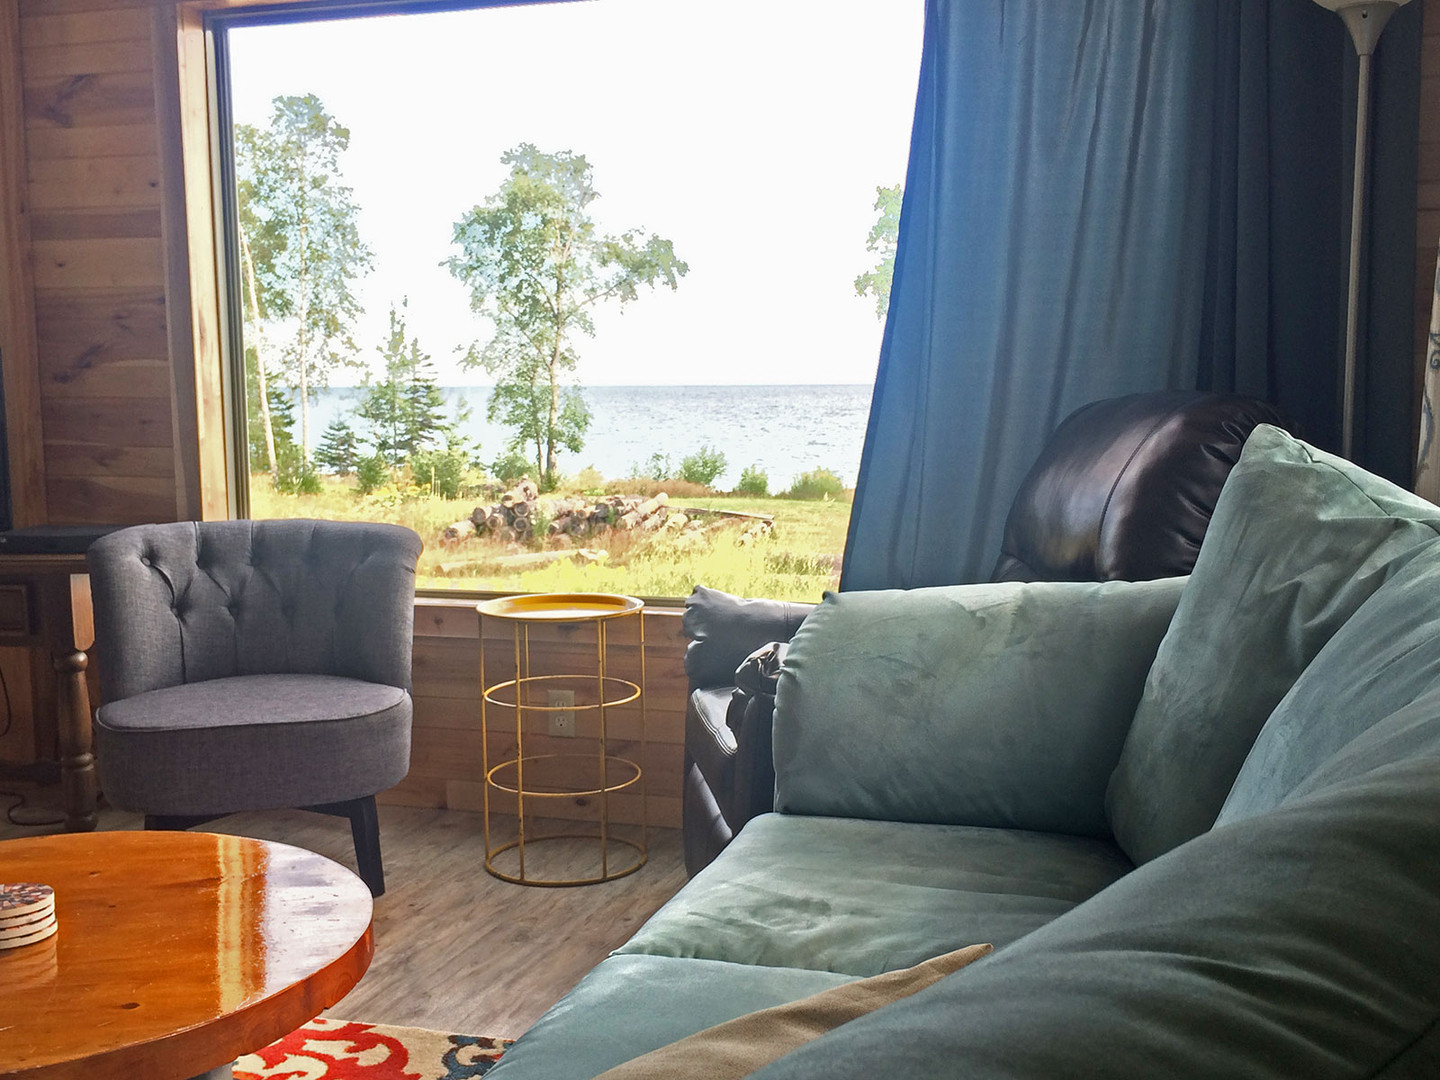 cabin-front-window-view-couch.jpg